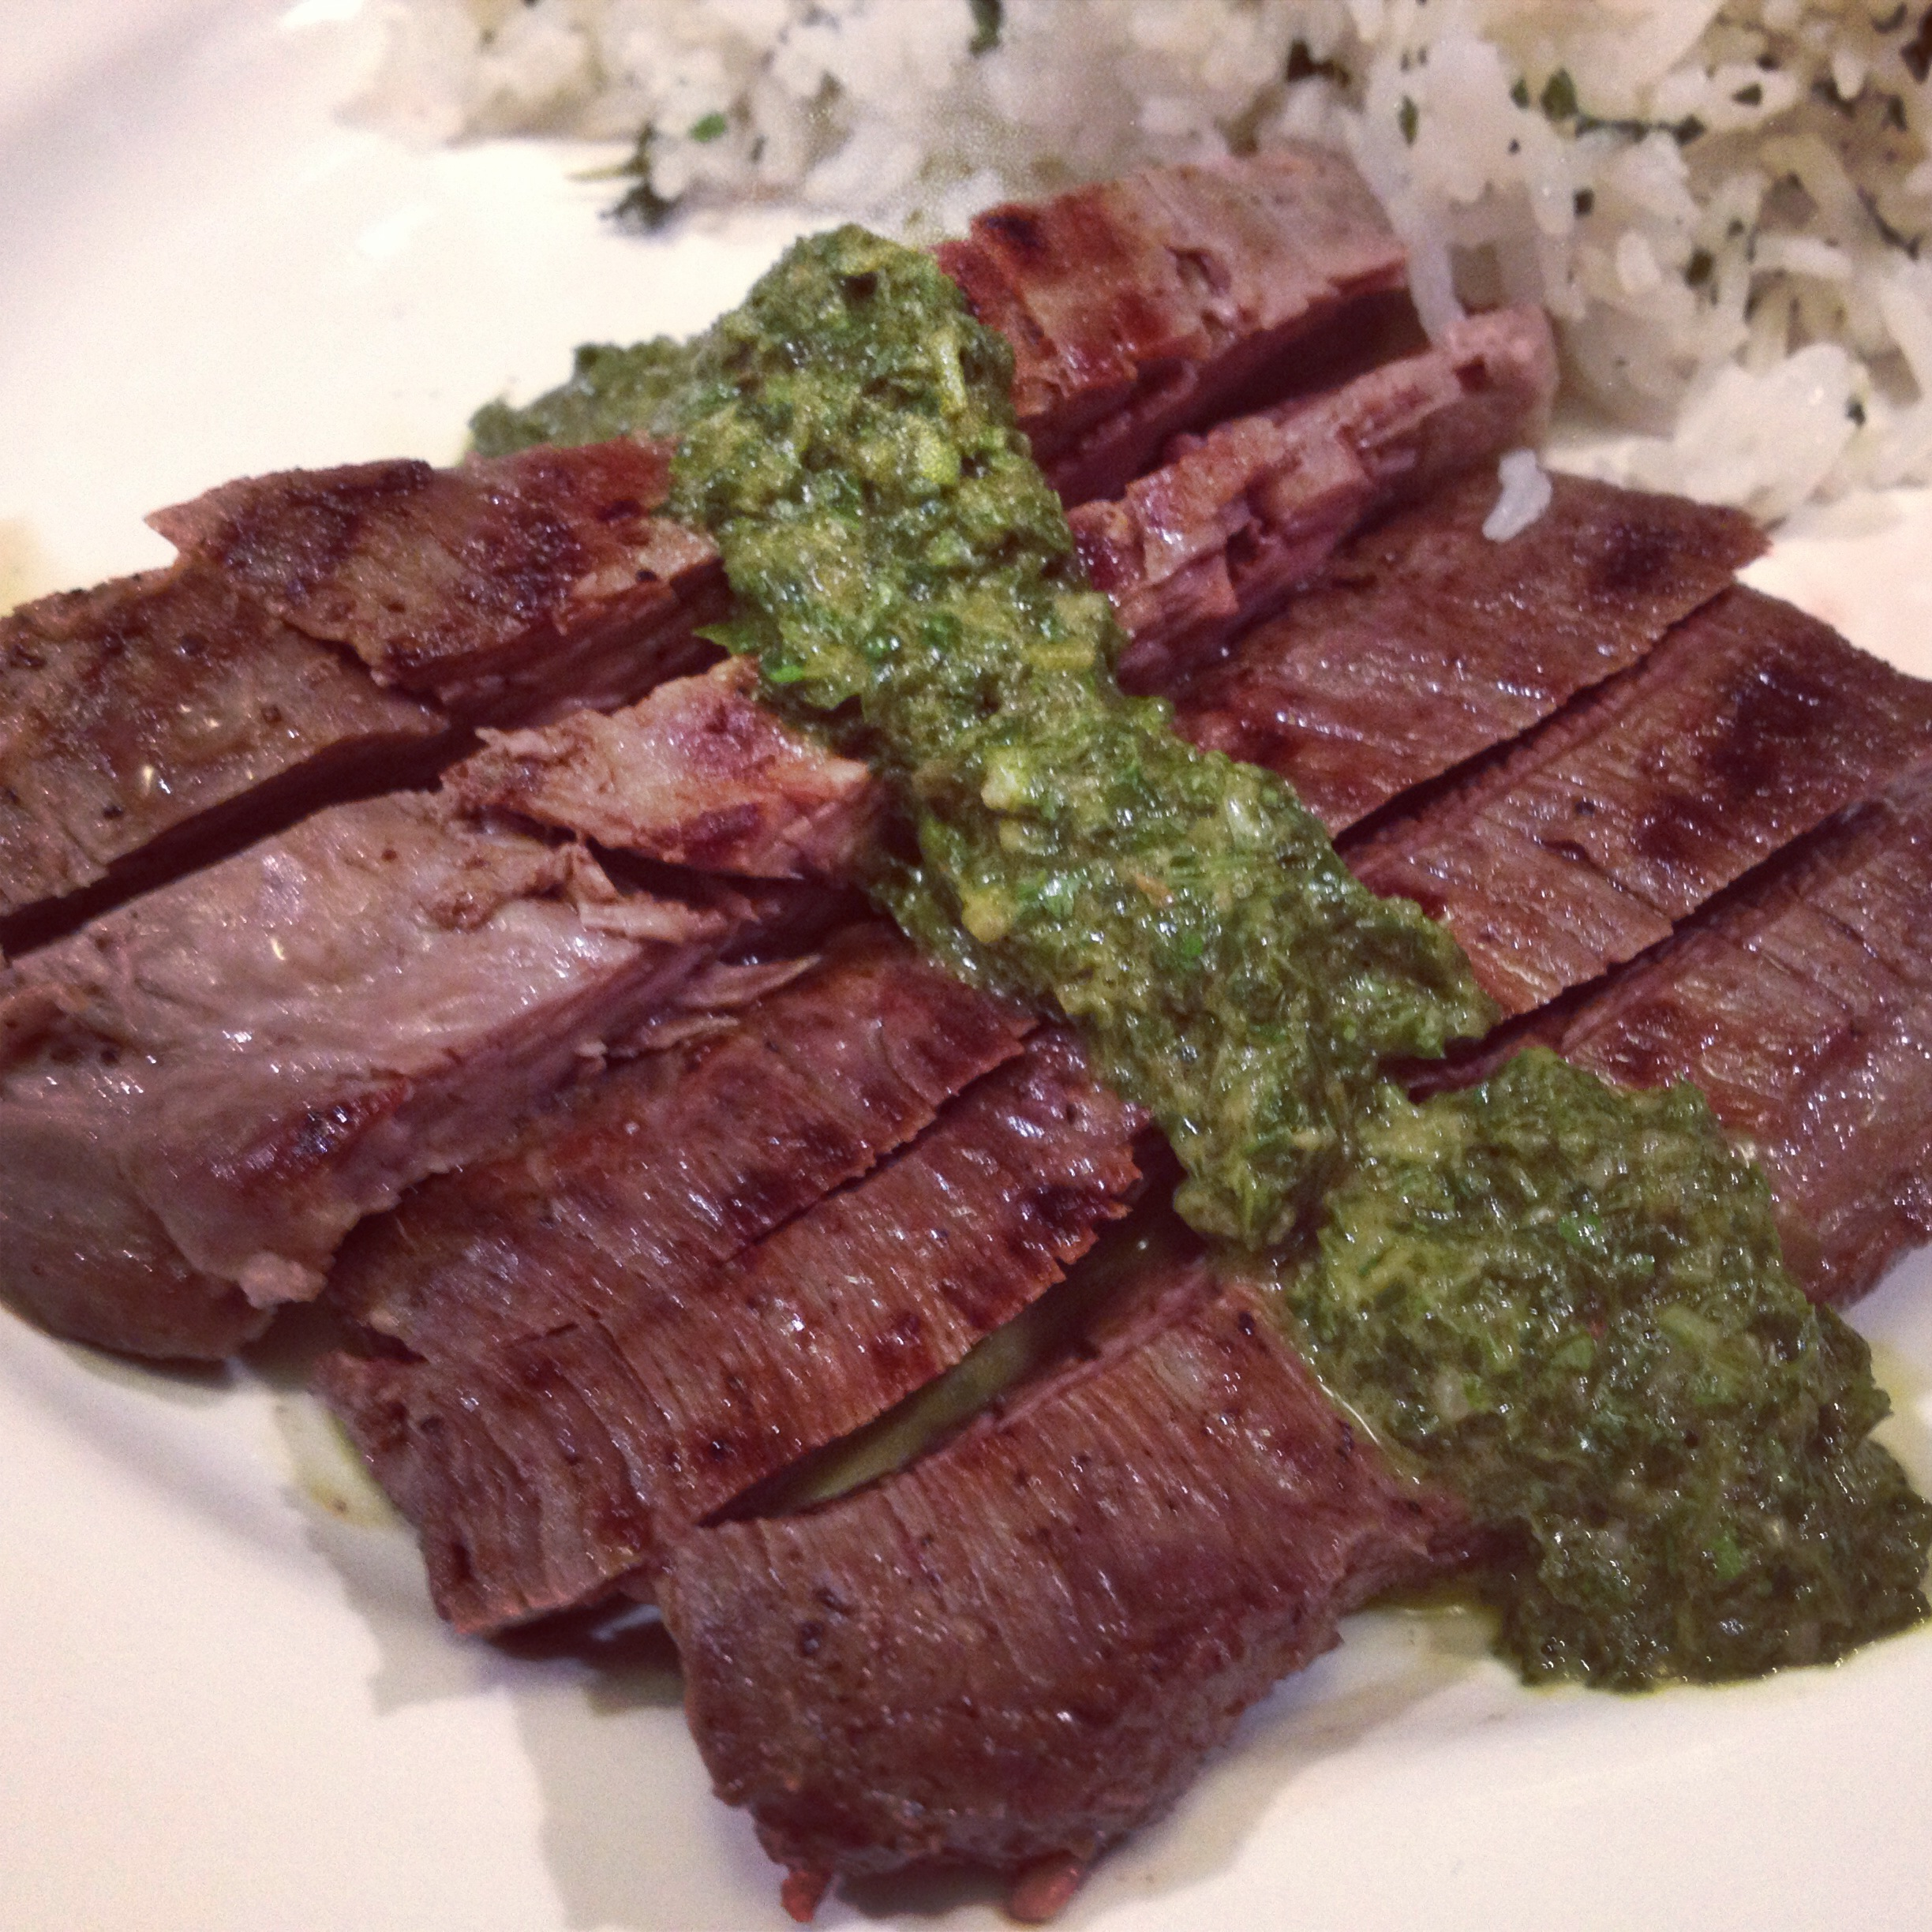 ... steak on texas toast with chimichurri grilled chicken chimichurri